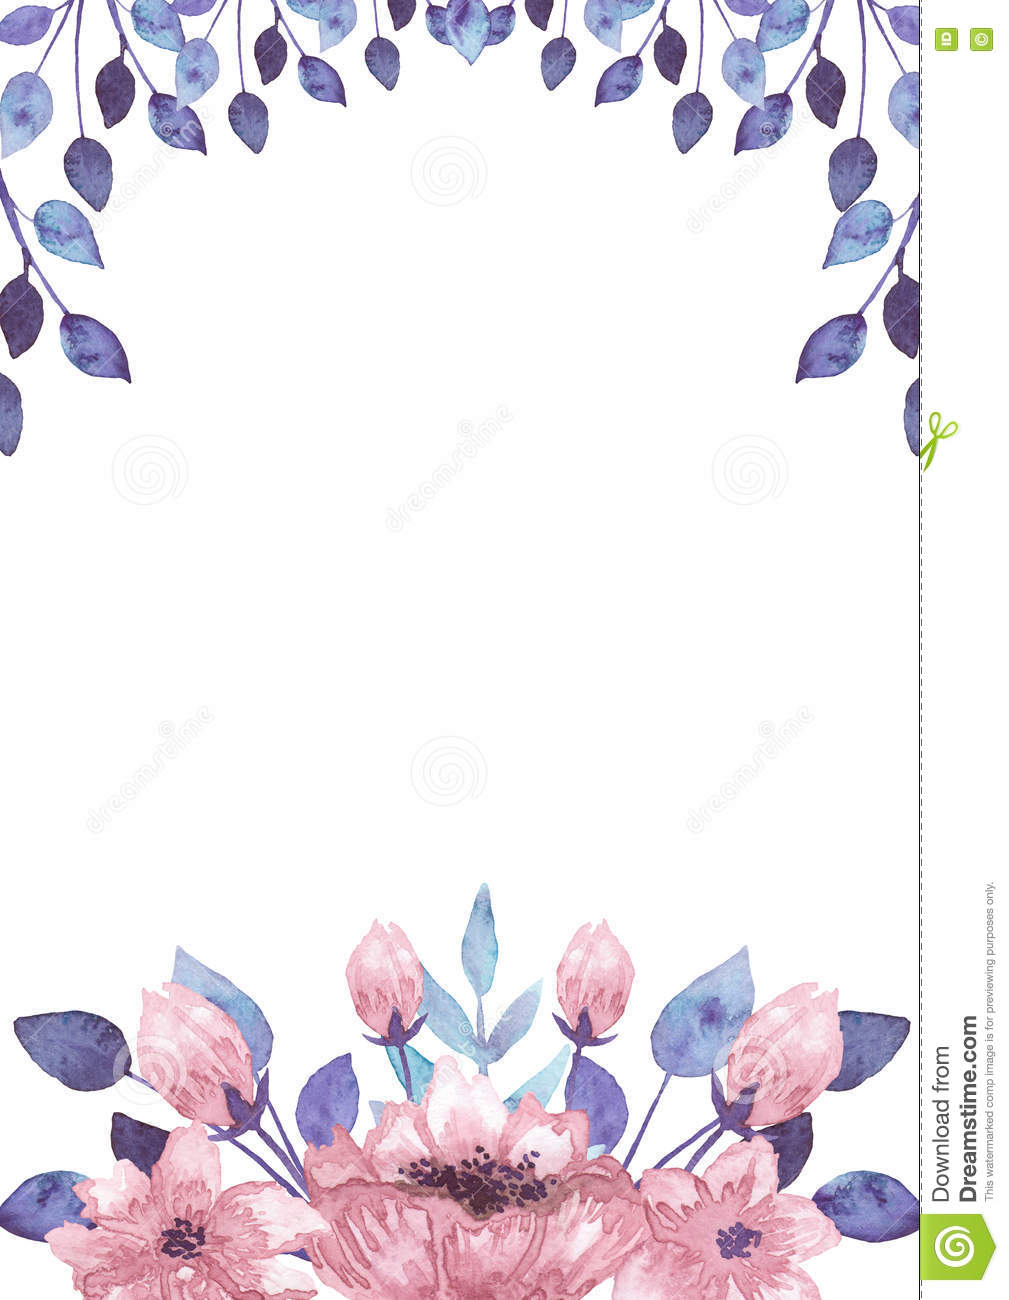 Frame With Watercolor Pink Flowers And Blue Leaves Stock